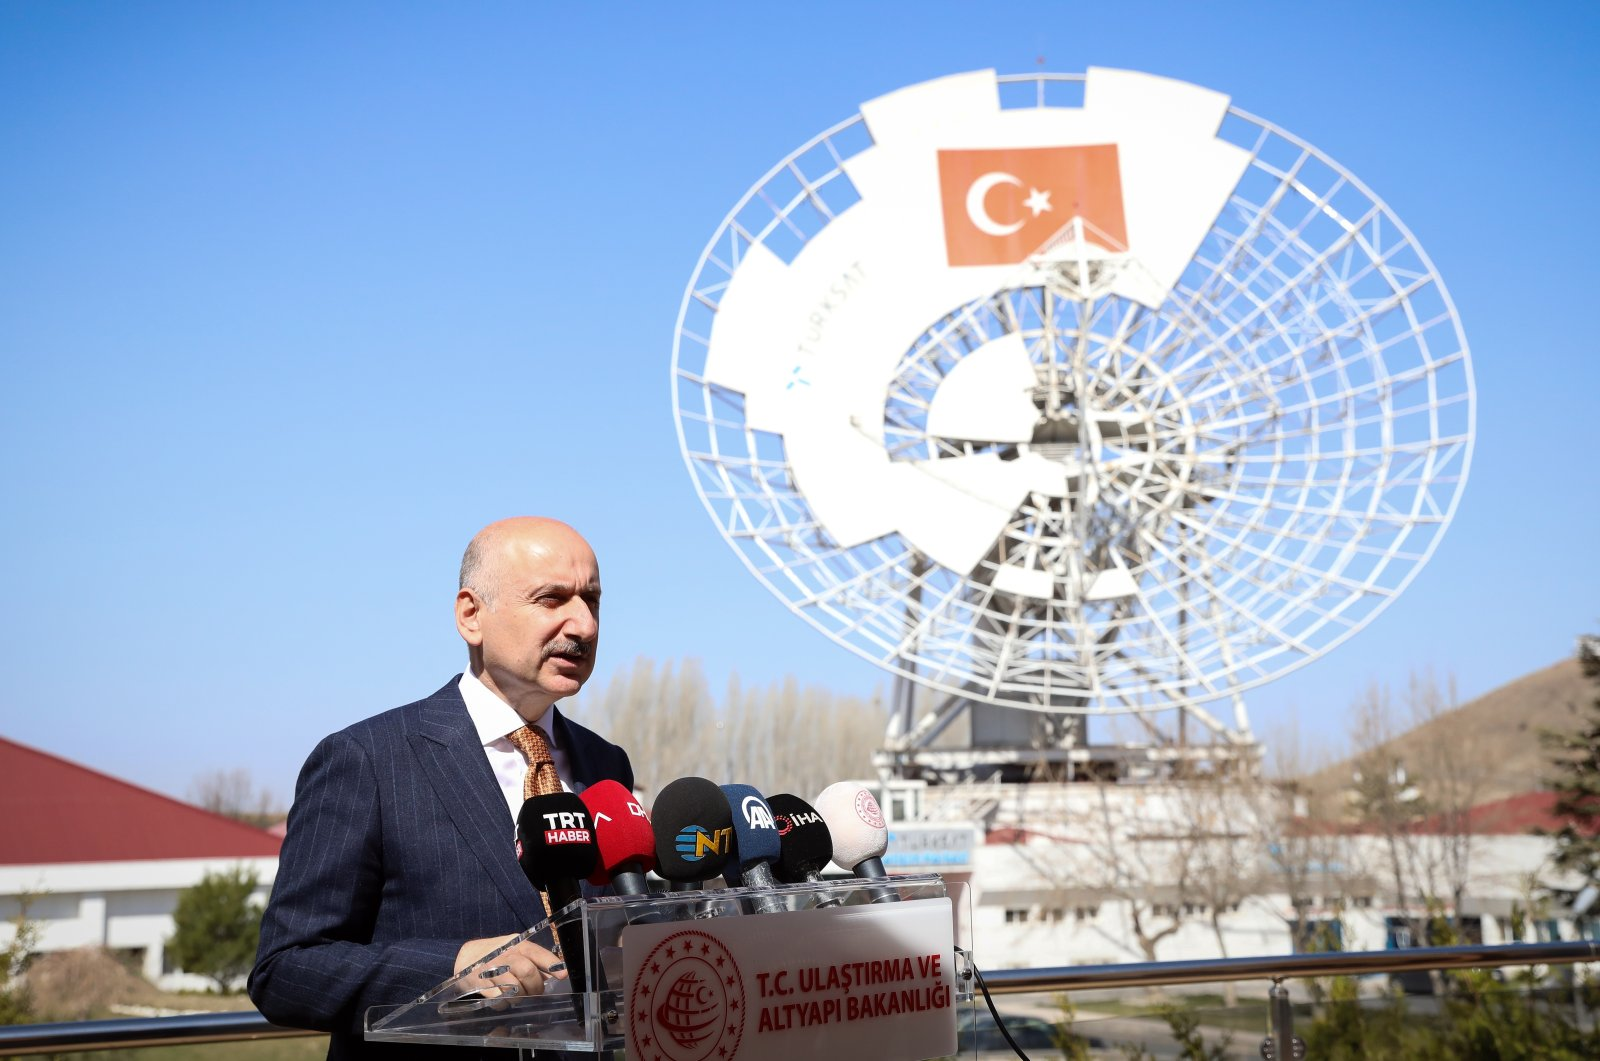 Transport and Infrastructure Minister Adil Karaismailoğlu speaks at a press conference in the Türksat facility in Gölbaşı district, in the capital Ankara, Turkey, April 7, 2021. (AA Photo)